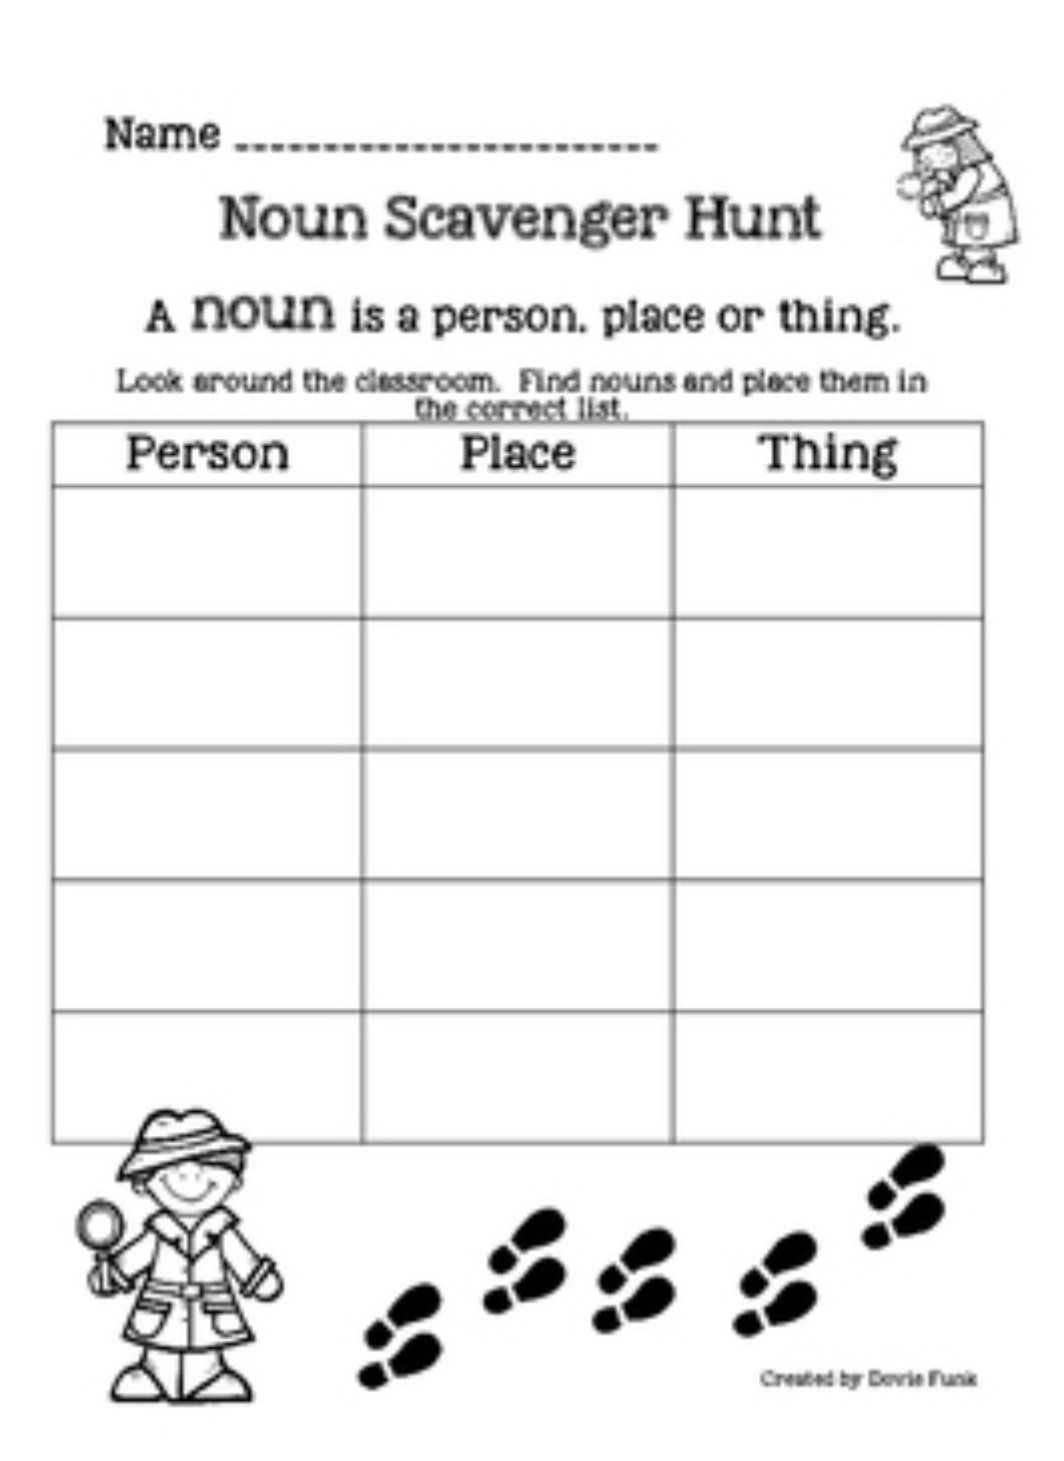 Compound Words And Contractions Activity